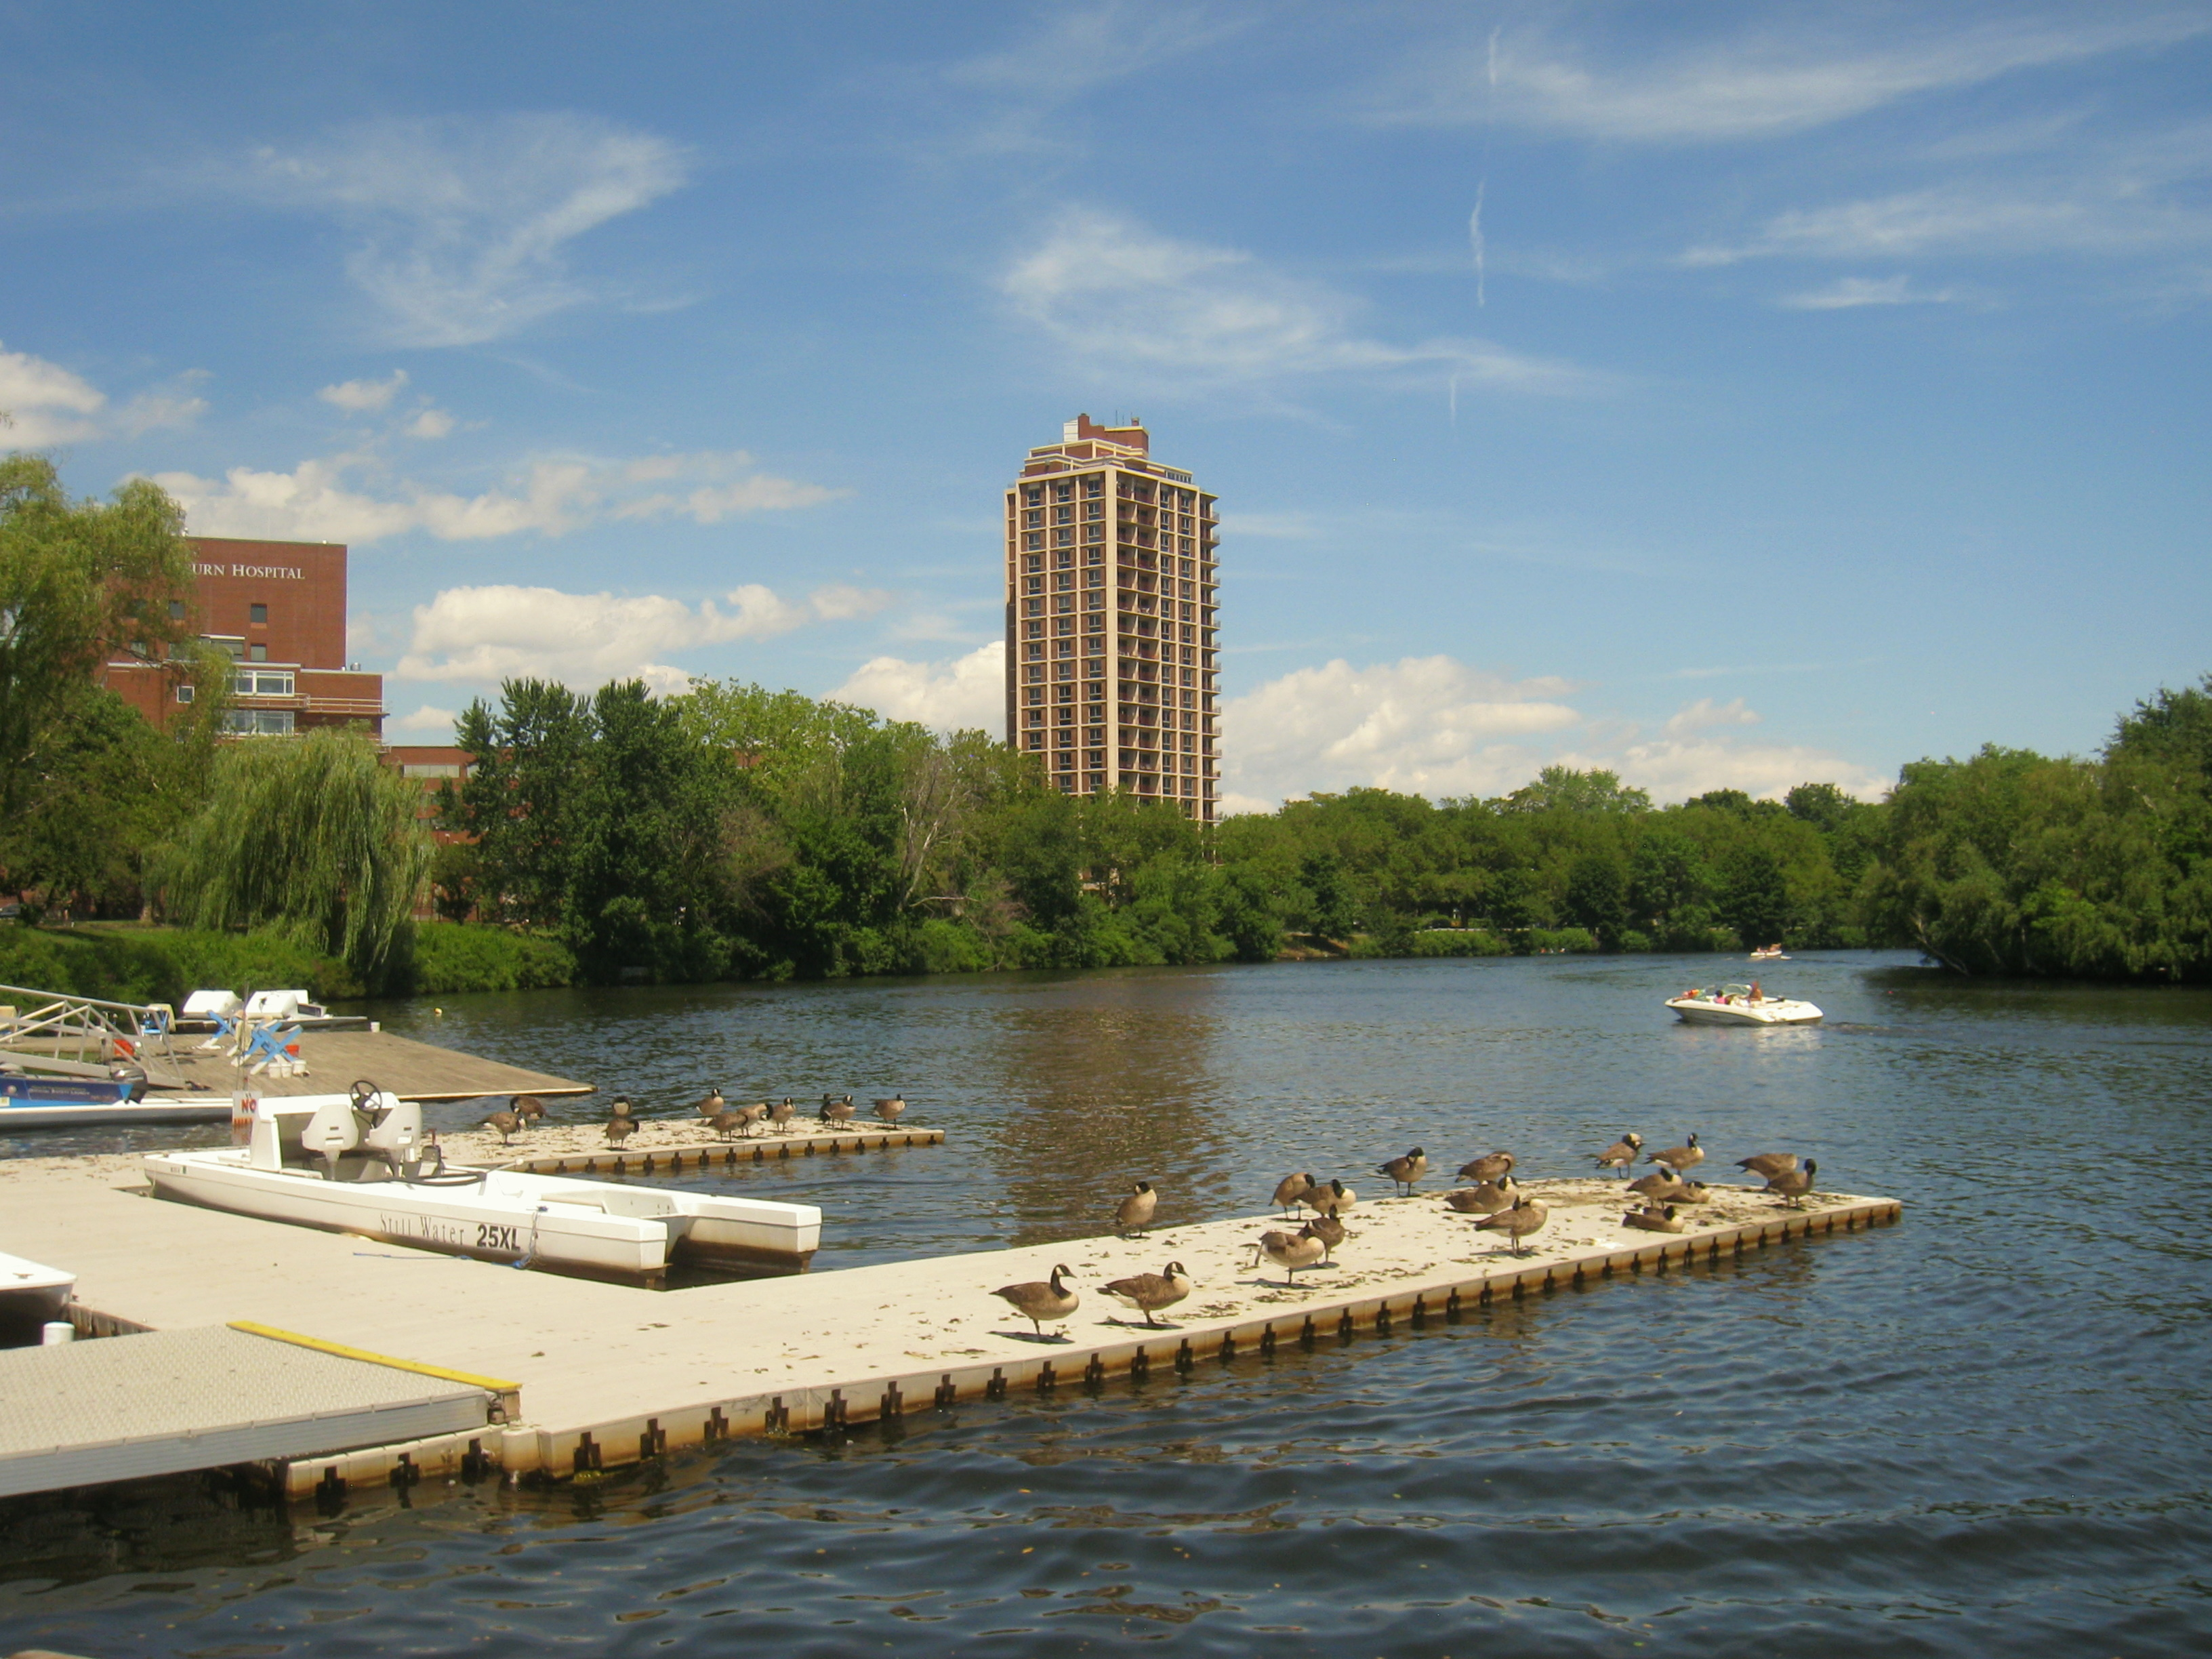 Efforts to clean up the Charles will be accelerated under a new settlement.